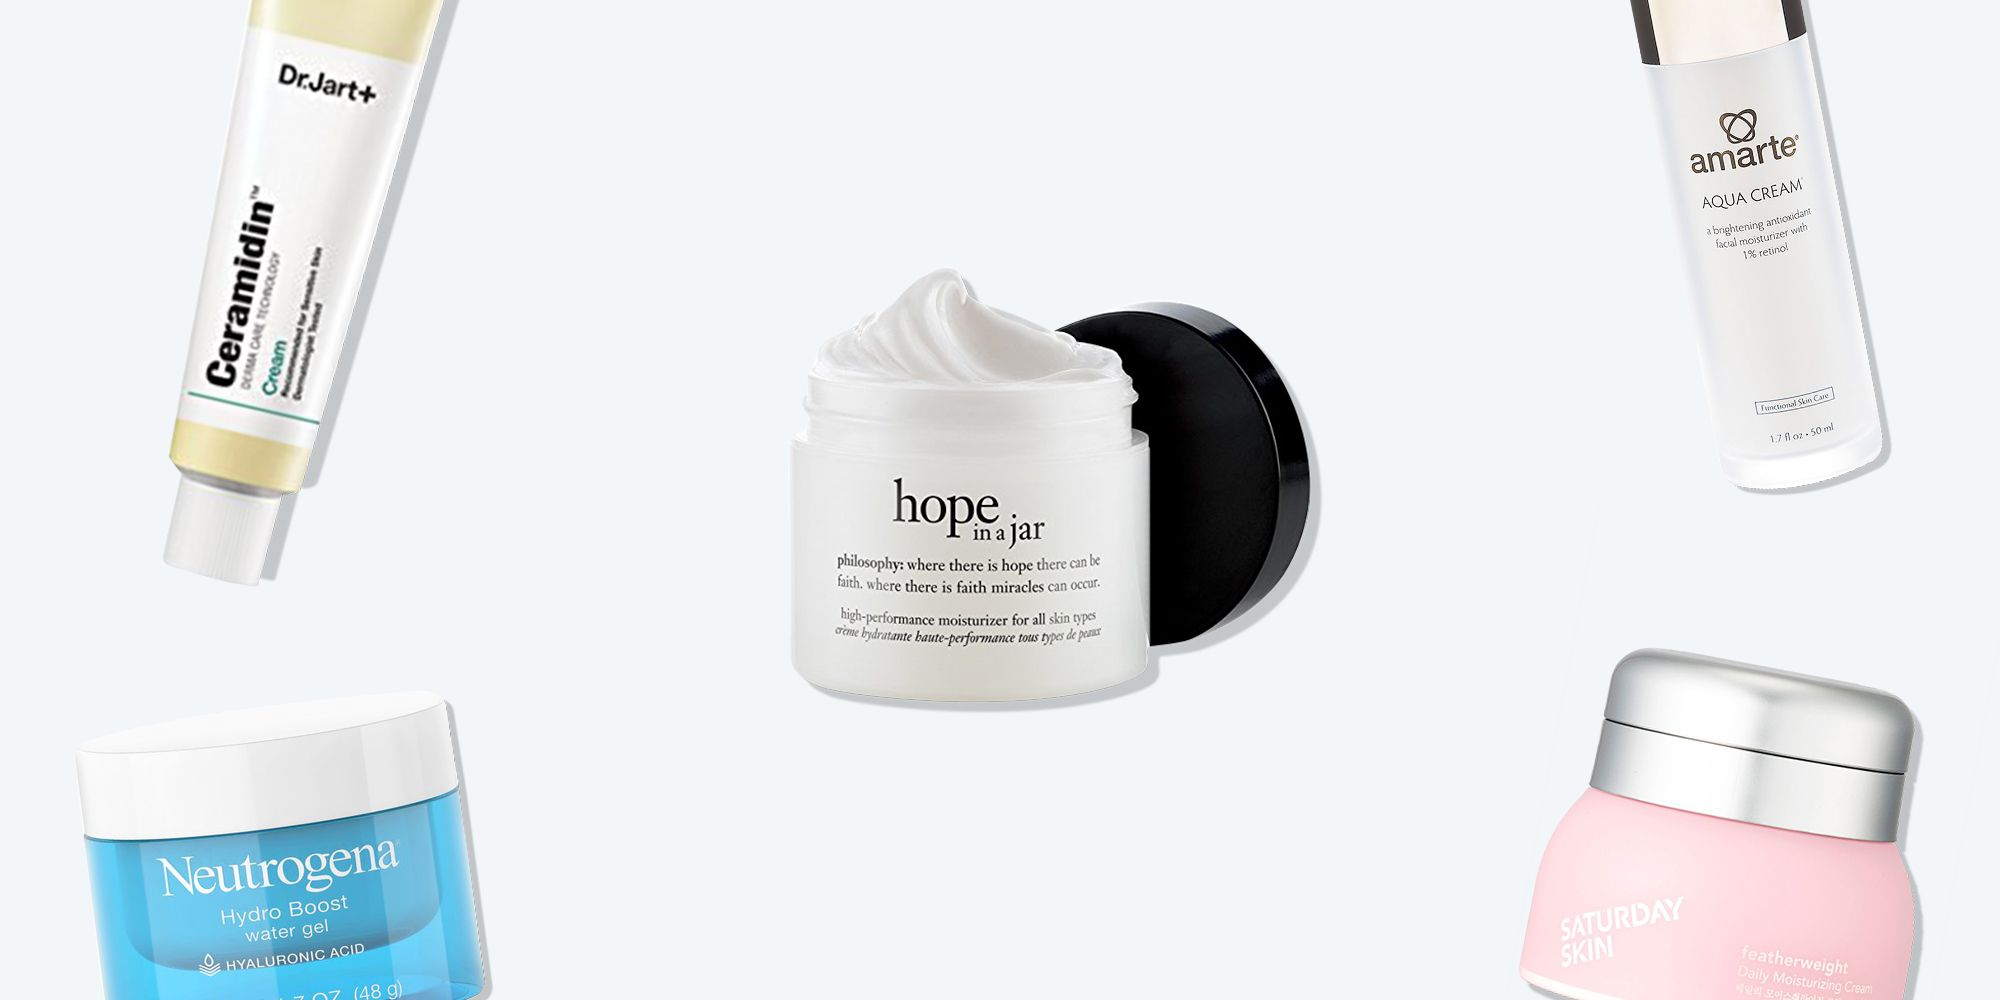 10 Editor-Approved Face Cream and Facial Moisturizer Picks